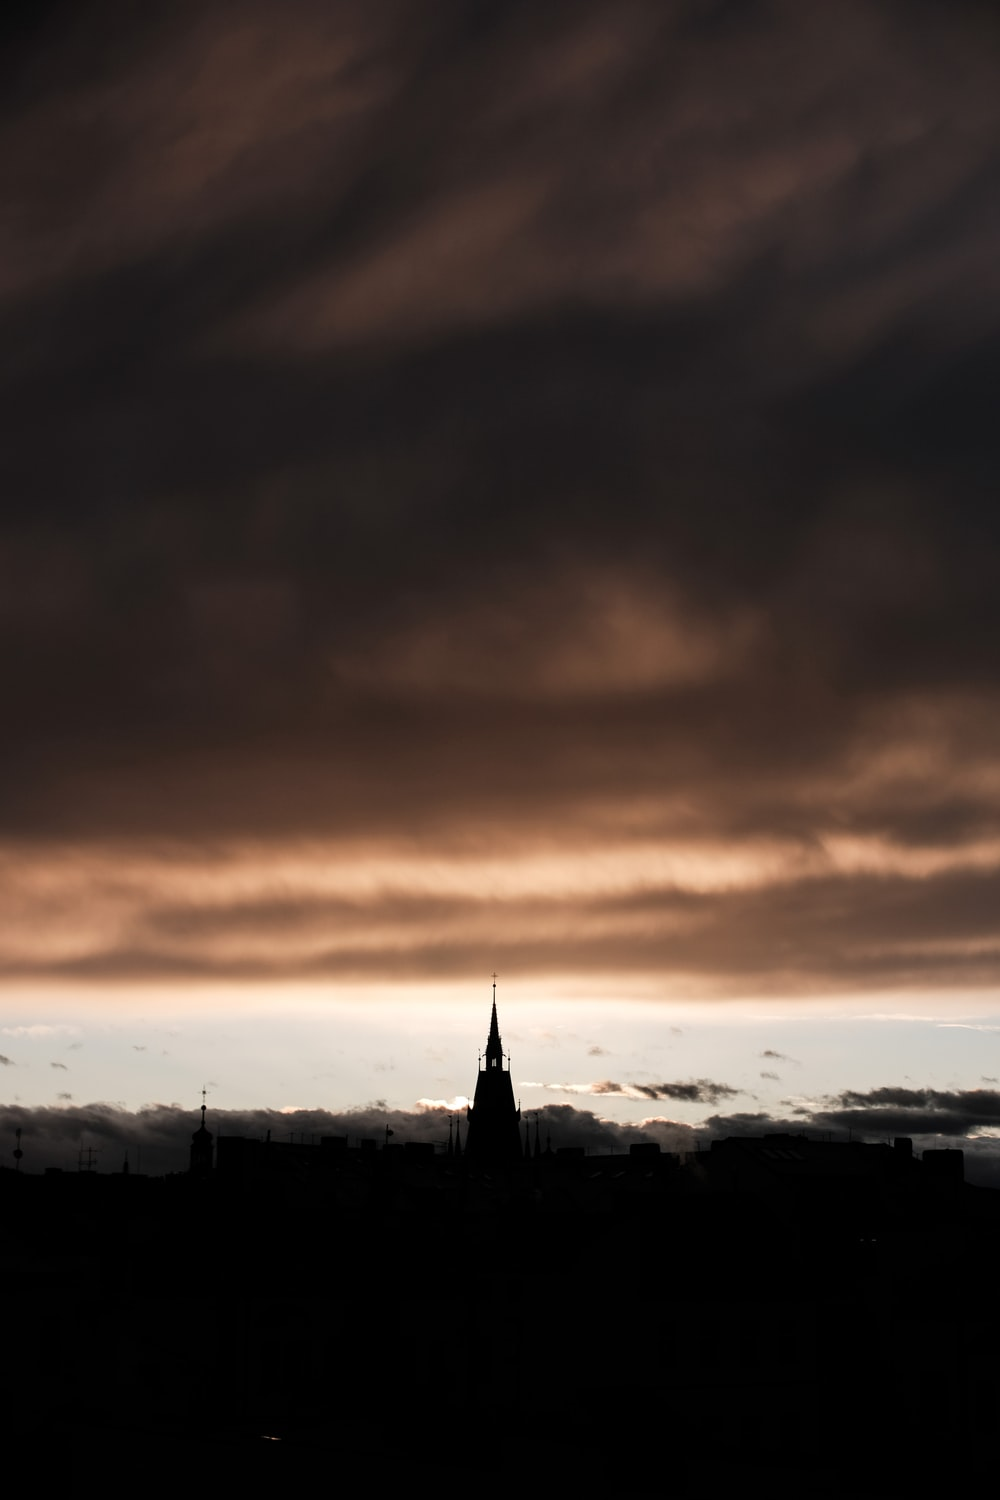 silhouette of tower under gray clouds during daytime